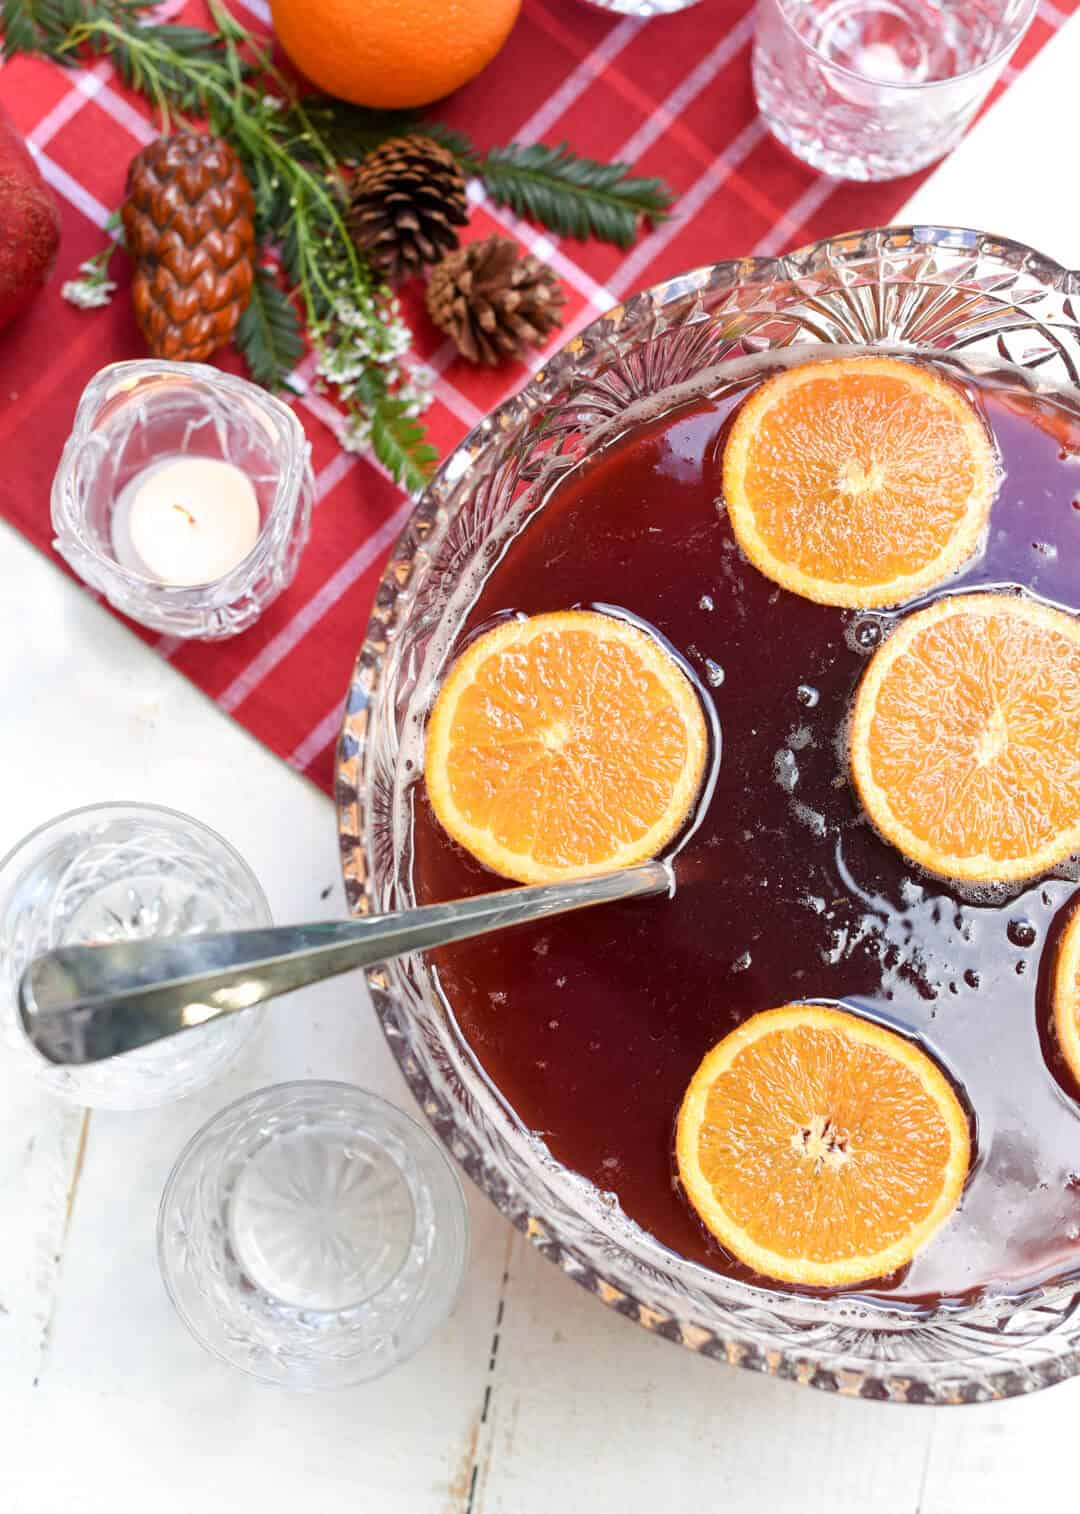 Orange slices float on the surface of the red punch in a punch bowl.